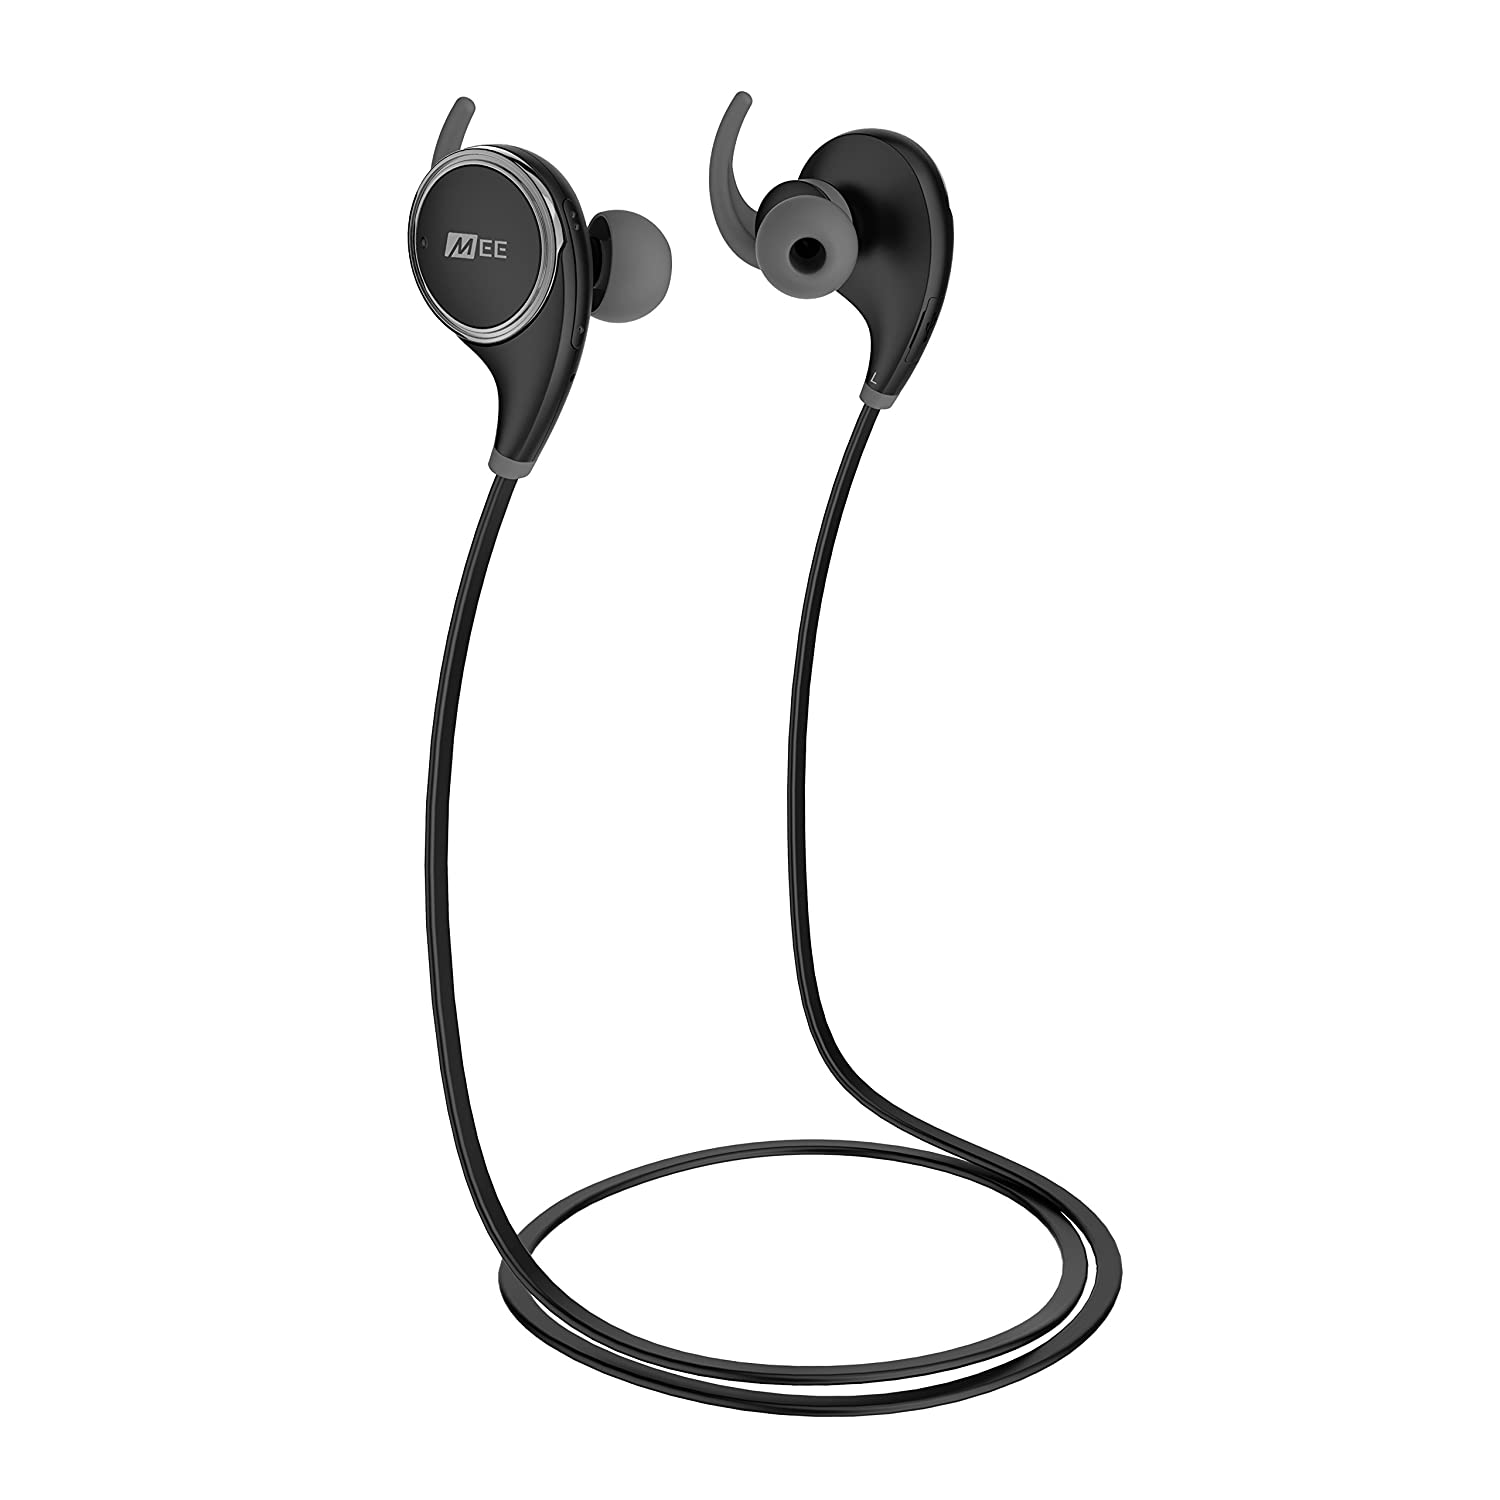 MEE audio AF18 Bluetooth Wireless Sports Earphones